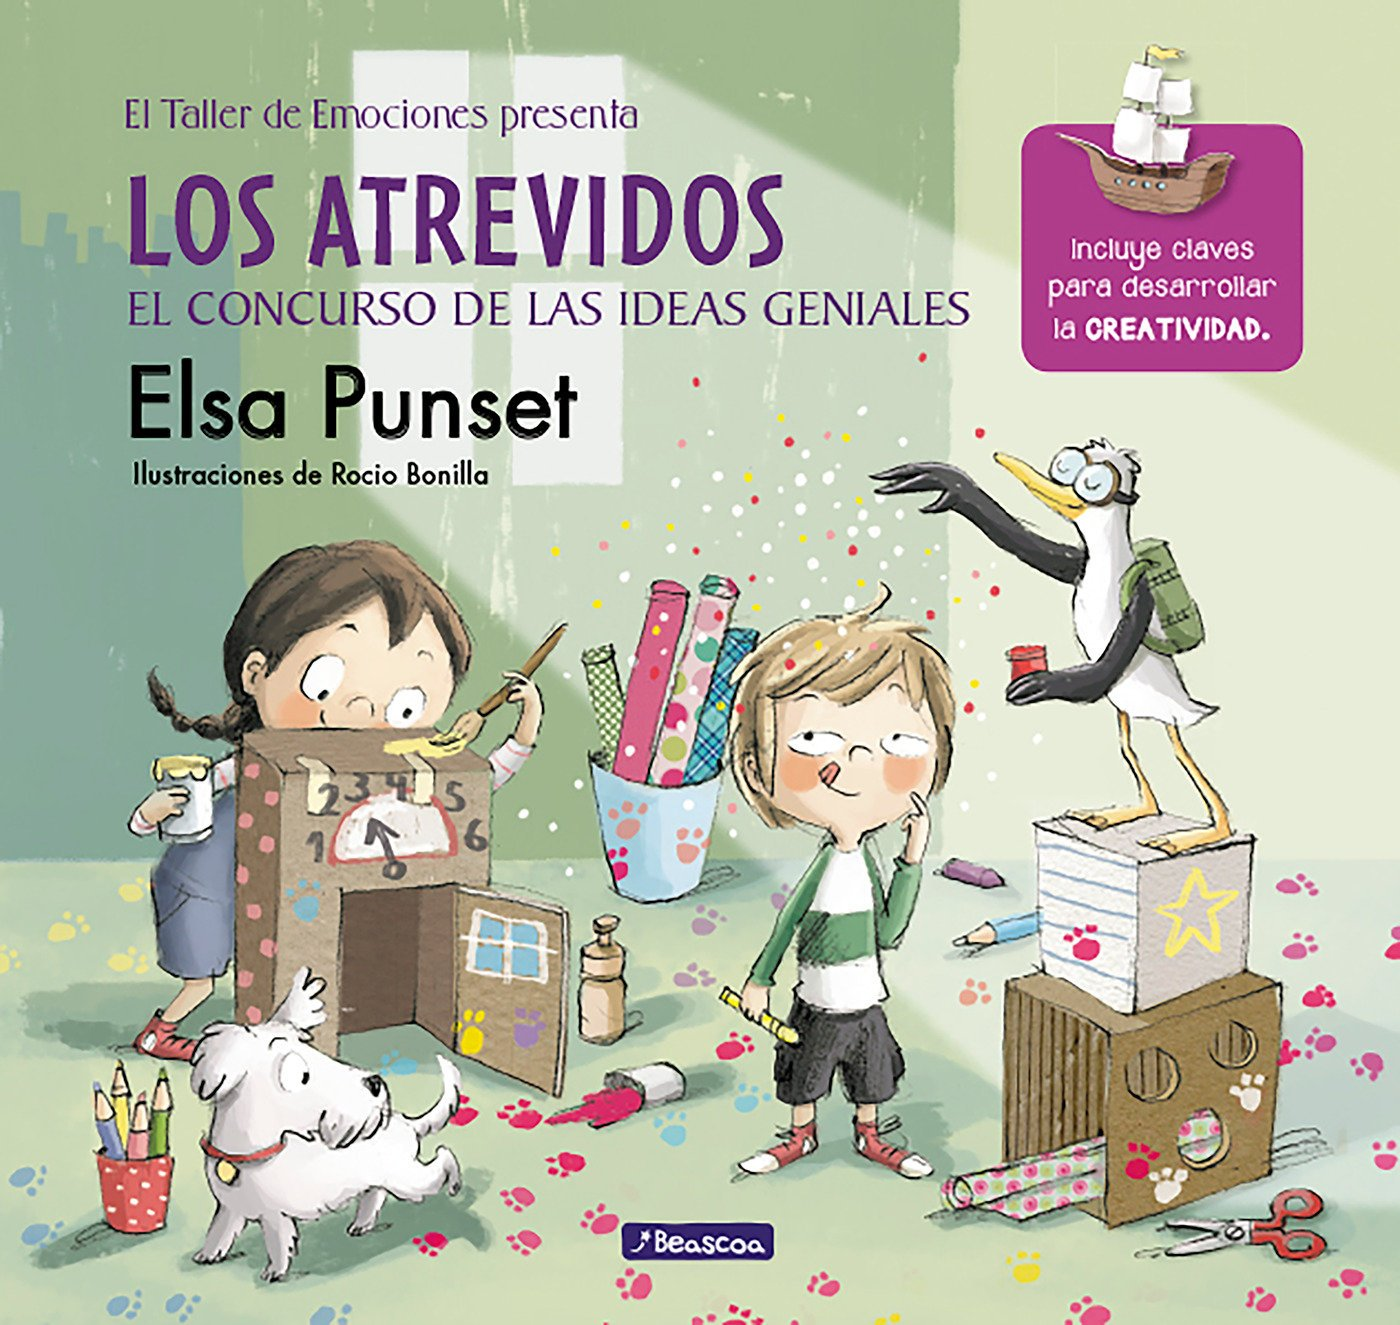 Los atrevidos y el concurso de las ideas geniales / The Daring and the Genius Ideas Contest (El Taller de Emociones  / Workshop of Emotions) (Spanish Edition) pdf